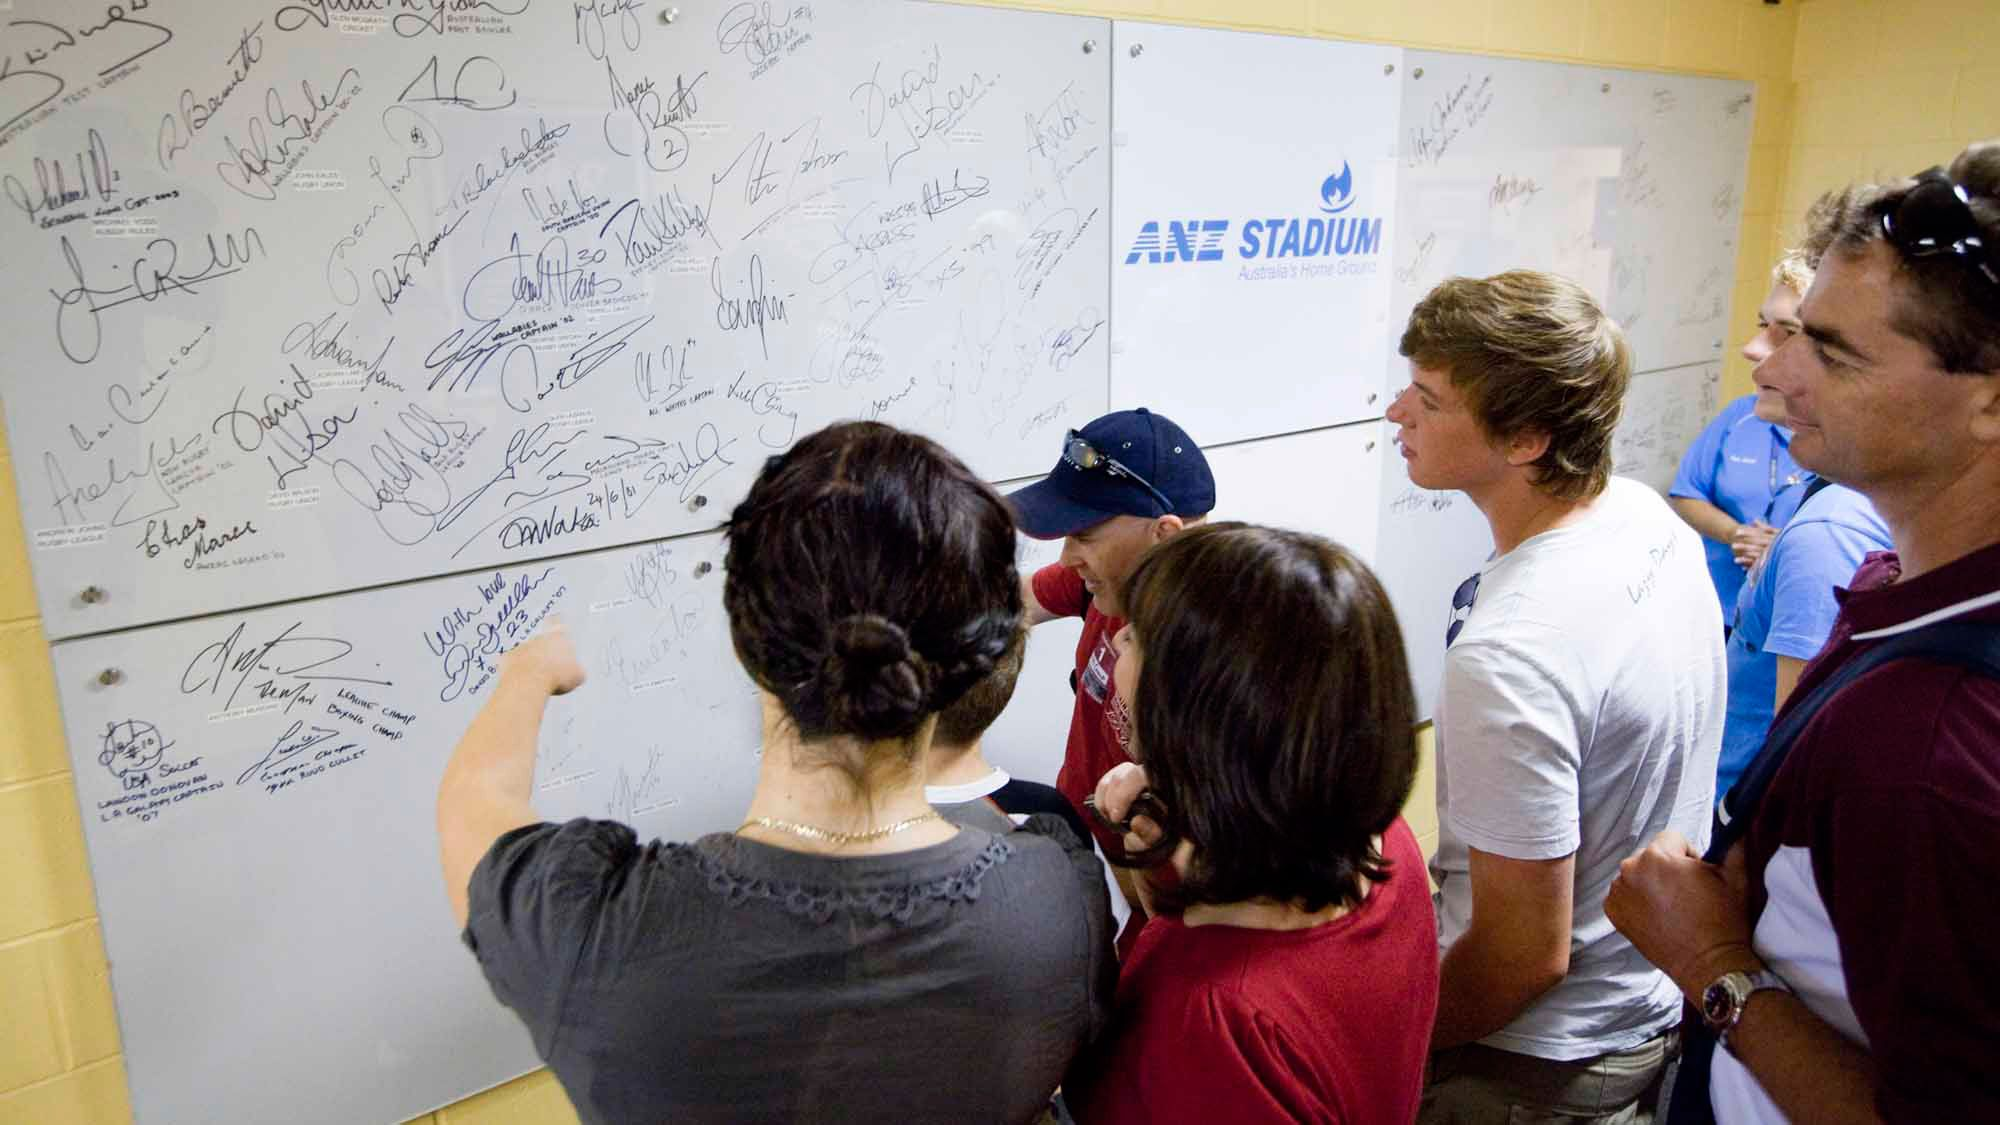 group of tourist looking at athlete signatures on white board in Stadium in Canberra